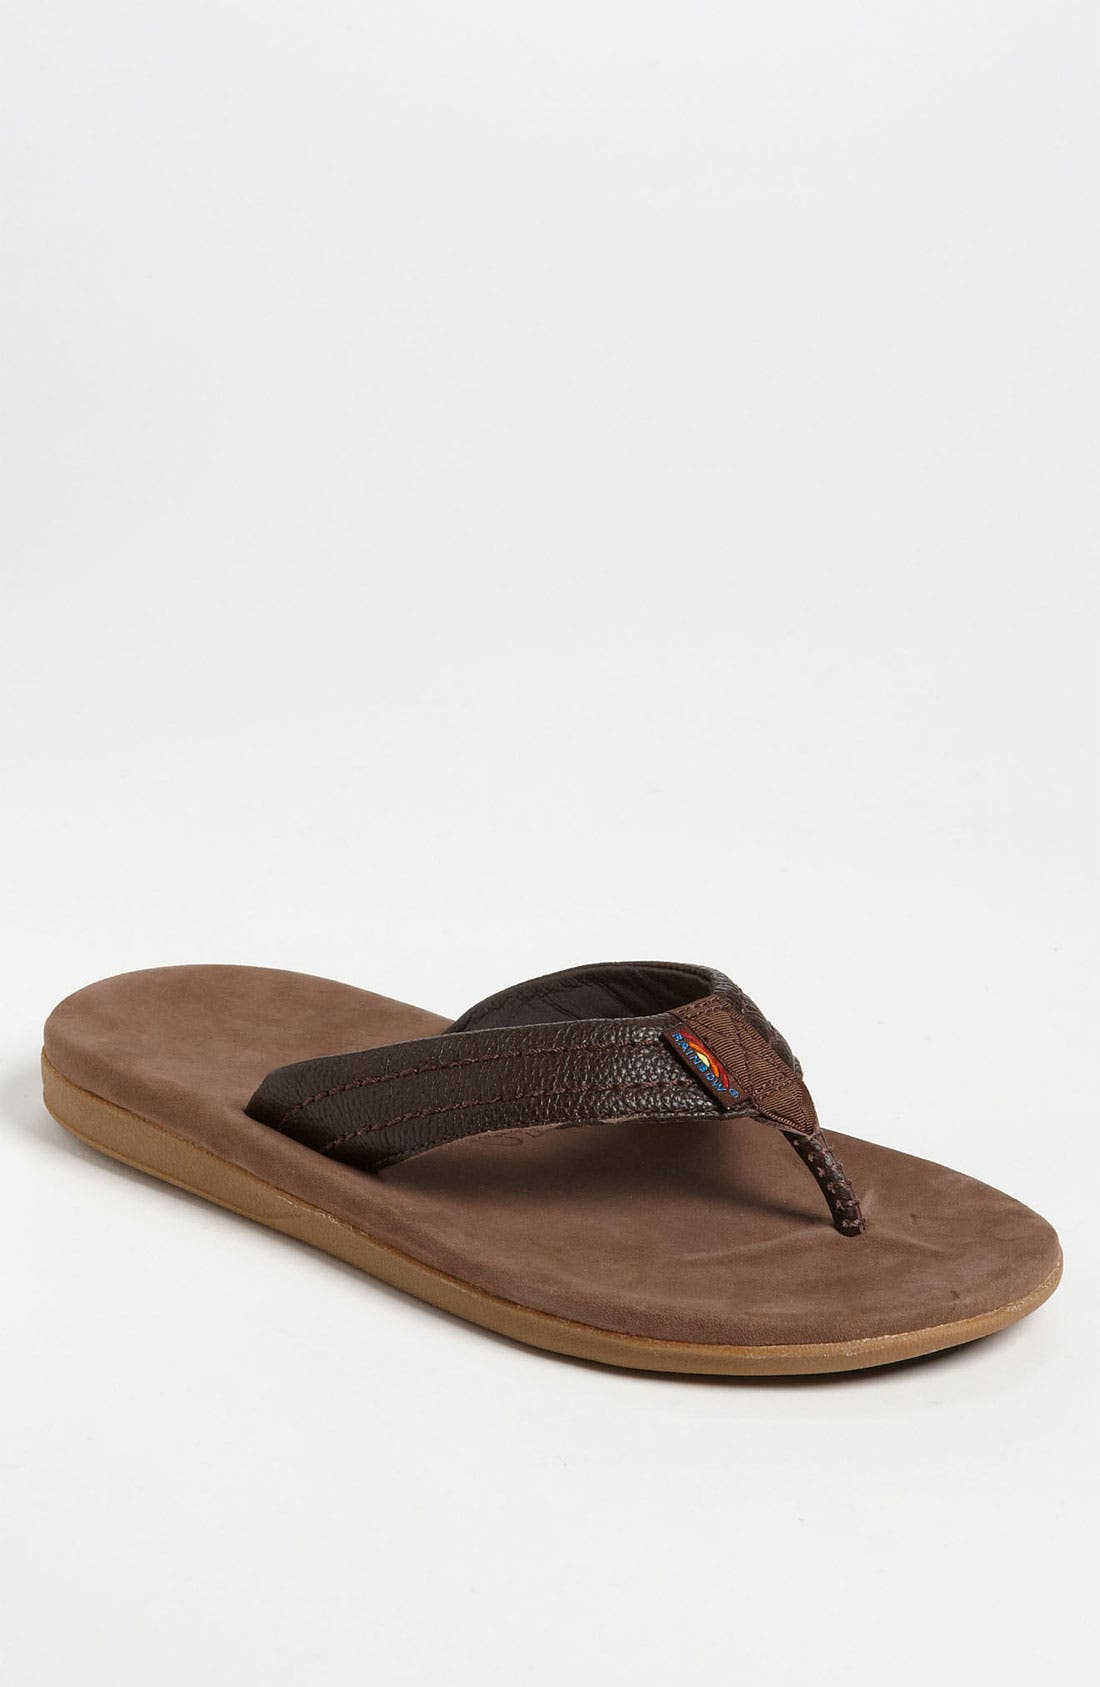 Alternate Image 1 Selected - Rainbow 'North Cove' Flip Flop (Men)